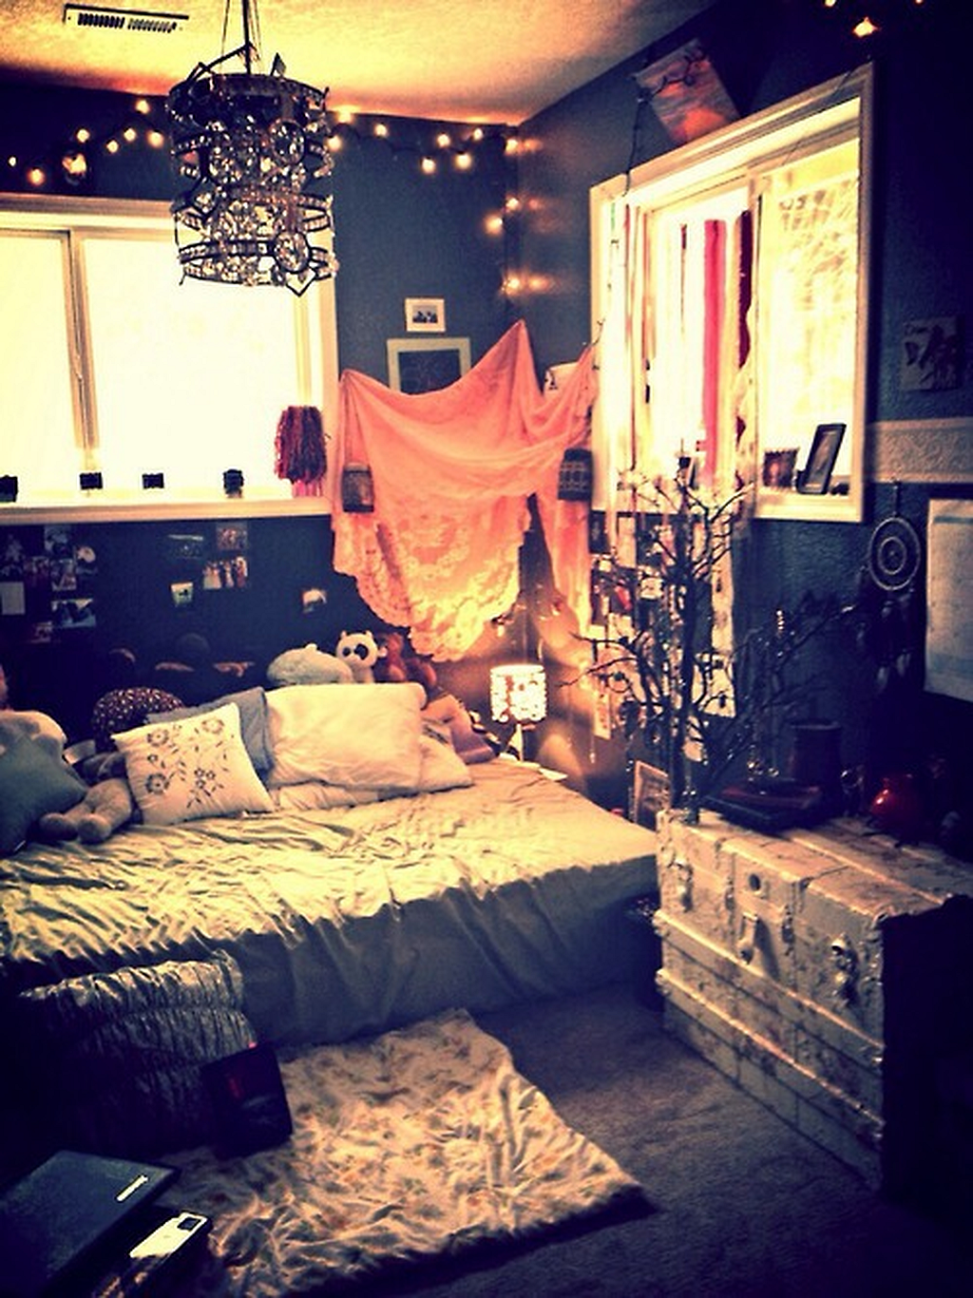 Cool DIY Hipster Bedroom Decorations Ideas Woman bedroom